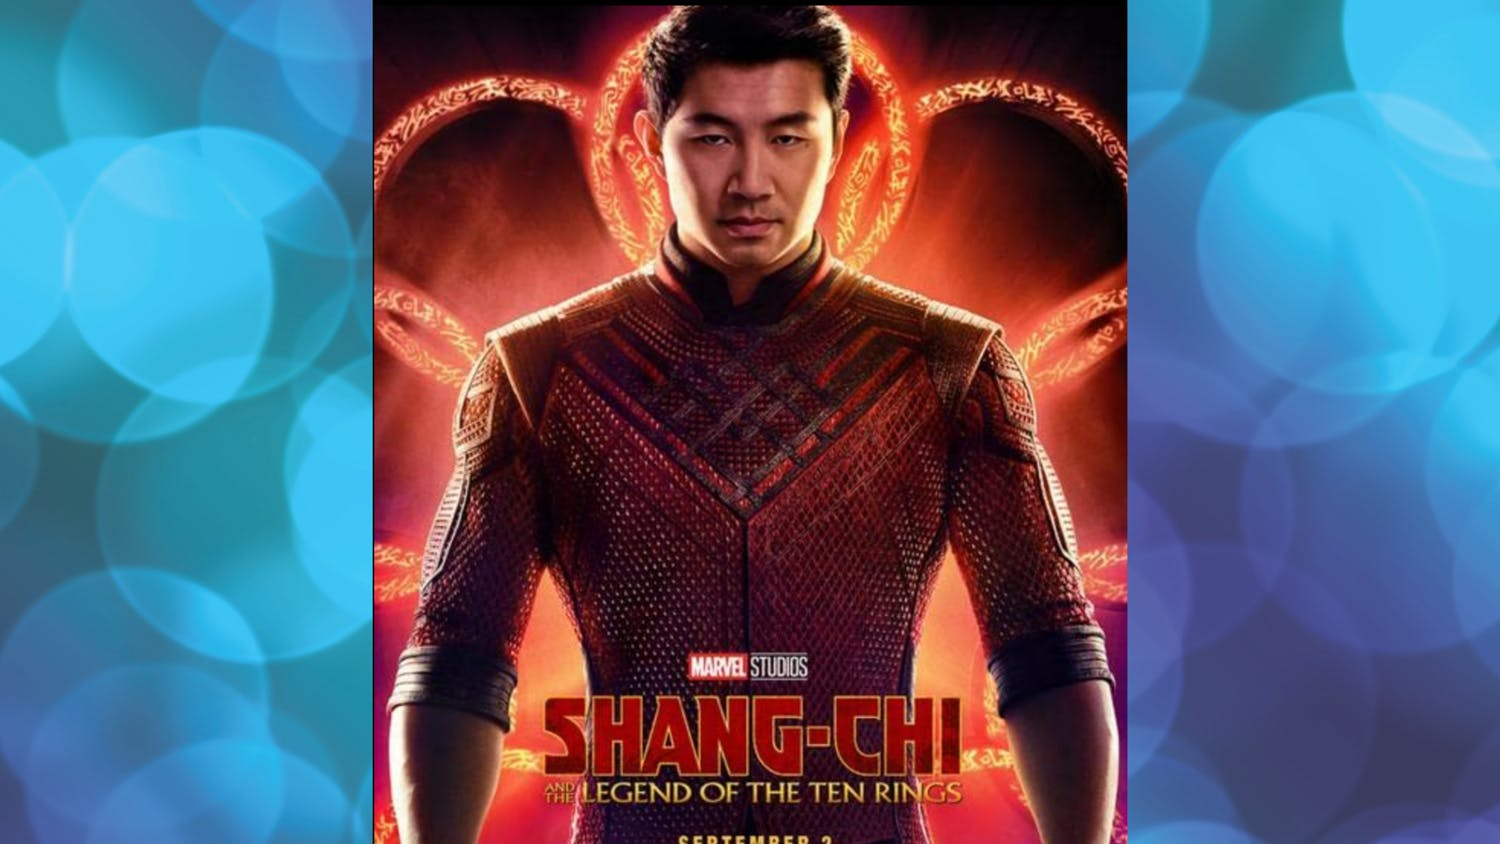 """""""Shang-Chi and the Legend of the Ten Rings,"""" the first Asian-led Marvel film, premiered Sept. 3. (Movie poster retrieved from IMDb)."""